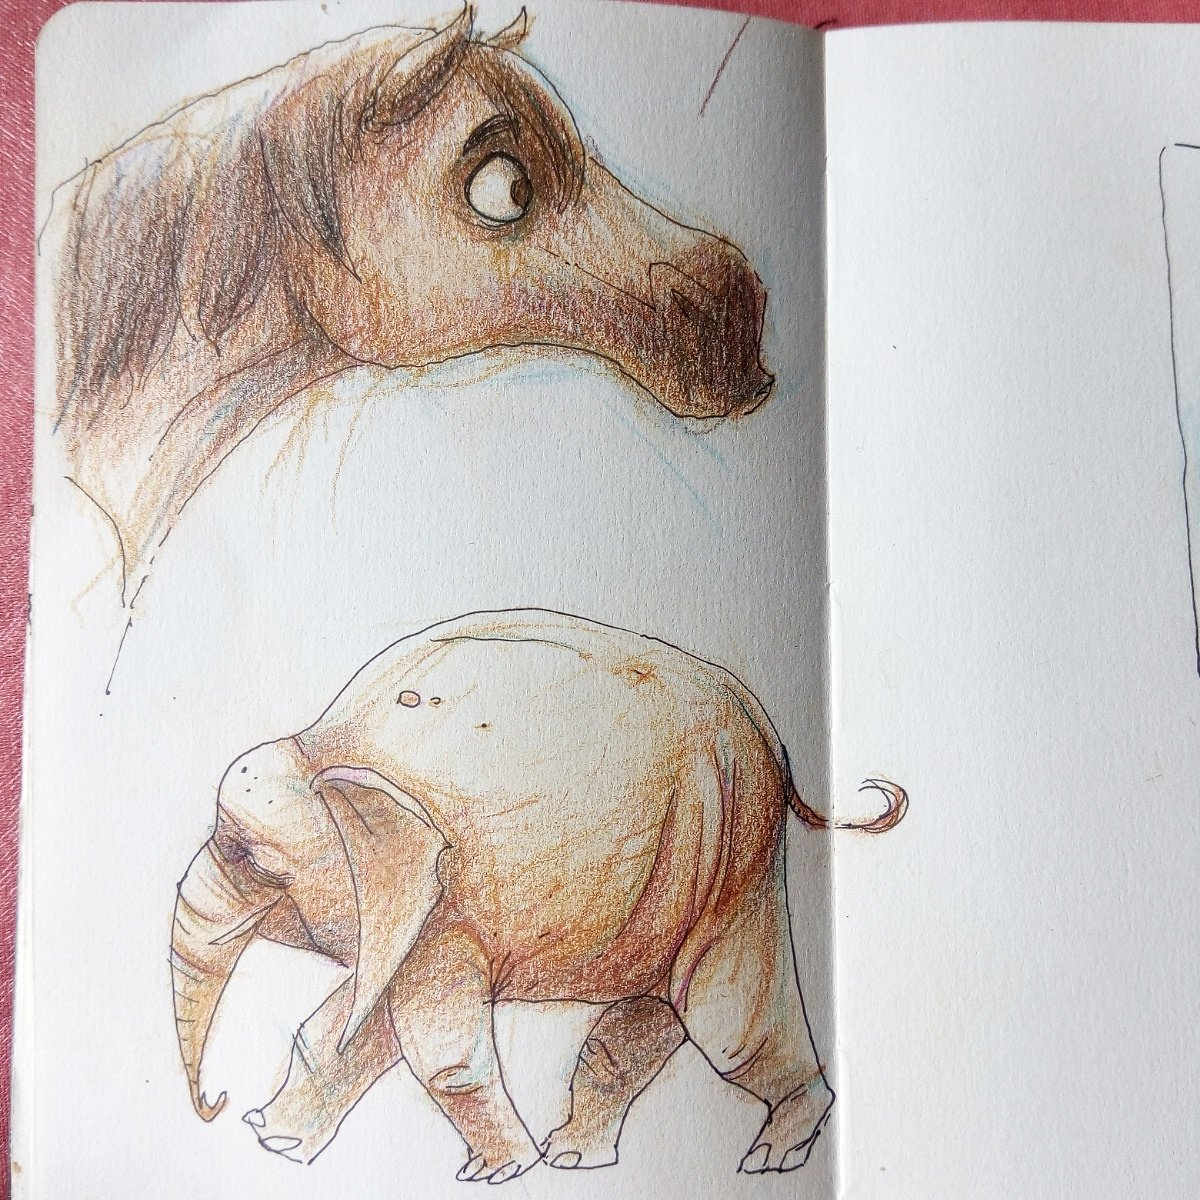 "Gaspard Talmasse On Twitter: ""des Animaux #cheval serapportantà Cheval Dessin Couleur"